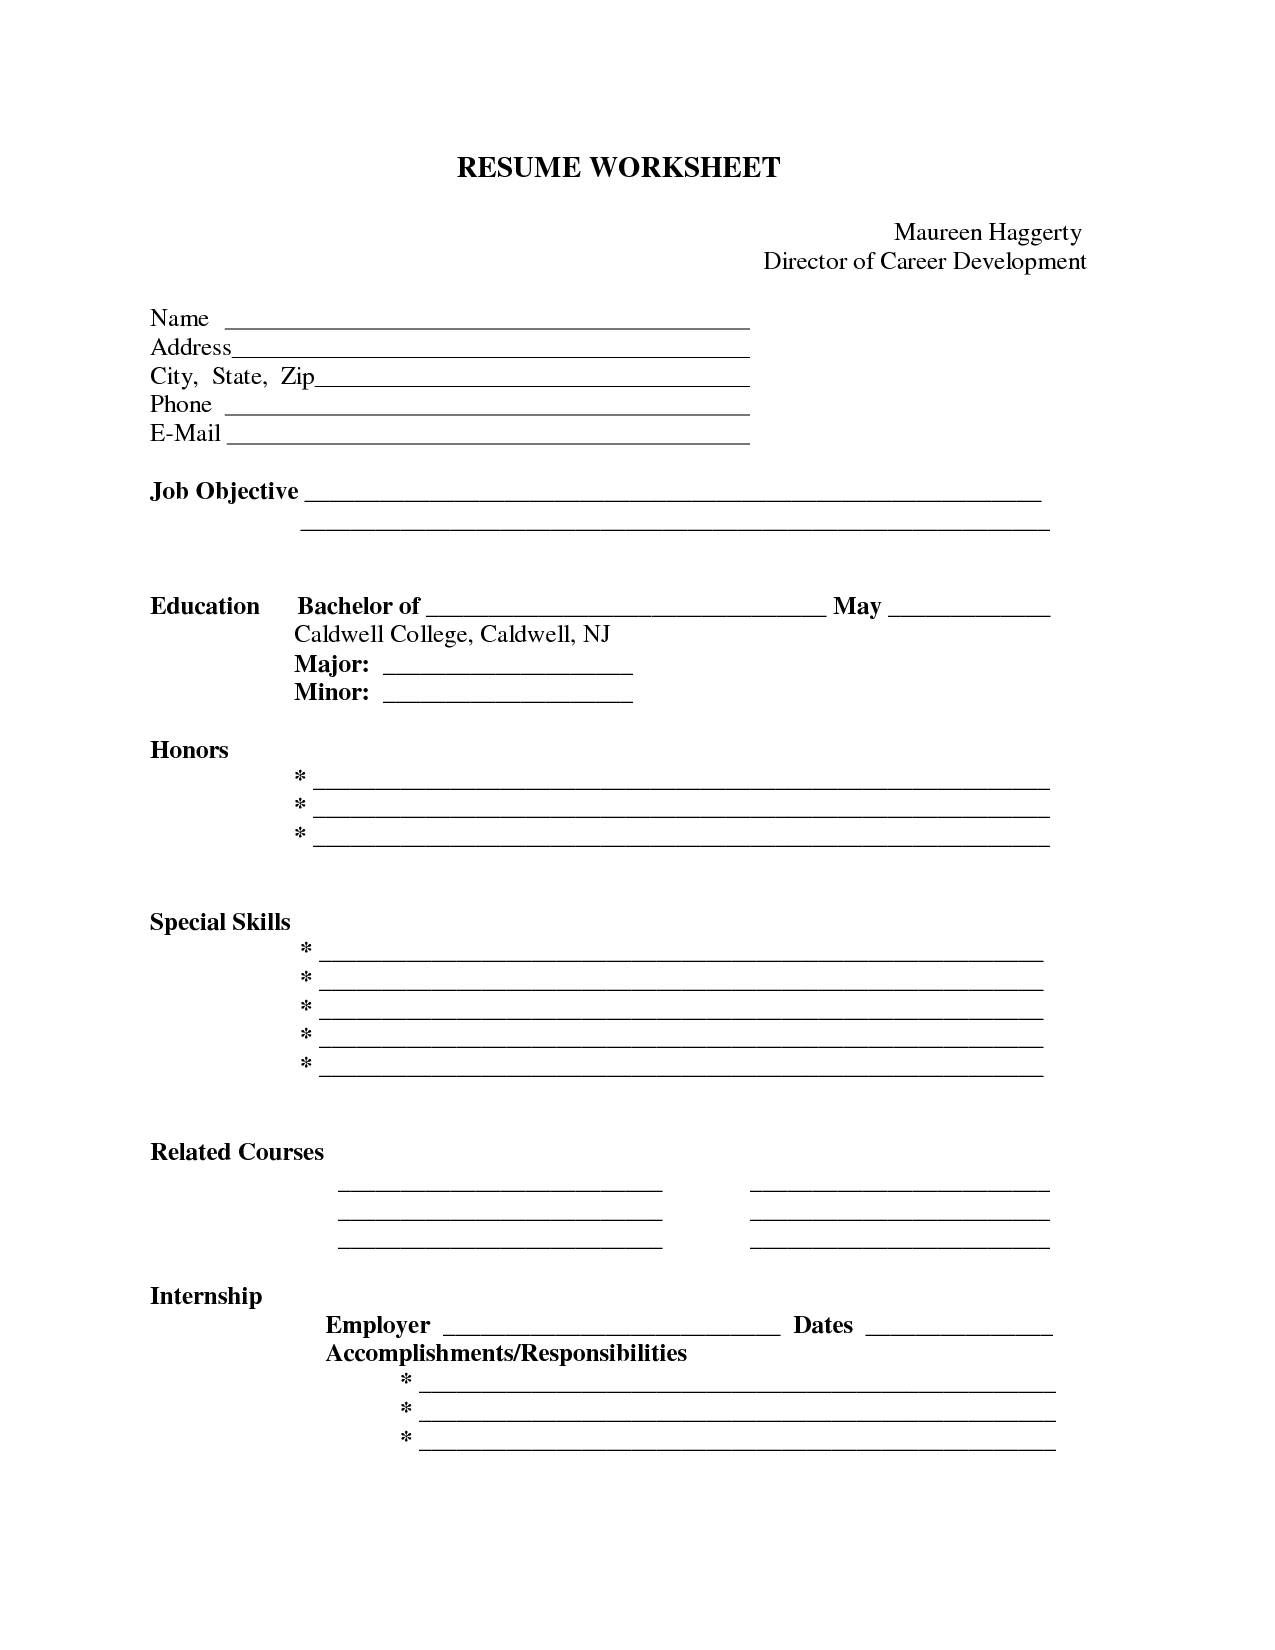 Free Printable Blank Resume Forms http://.resumecareer.info